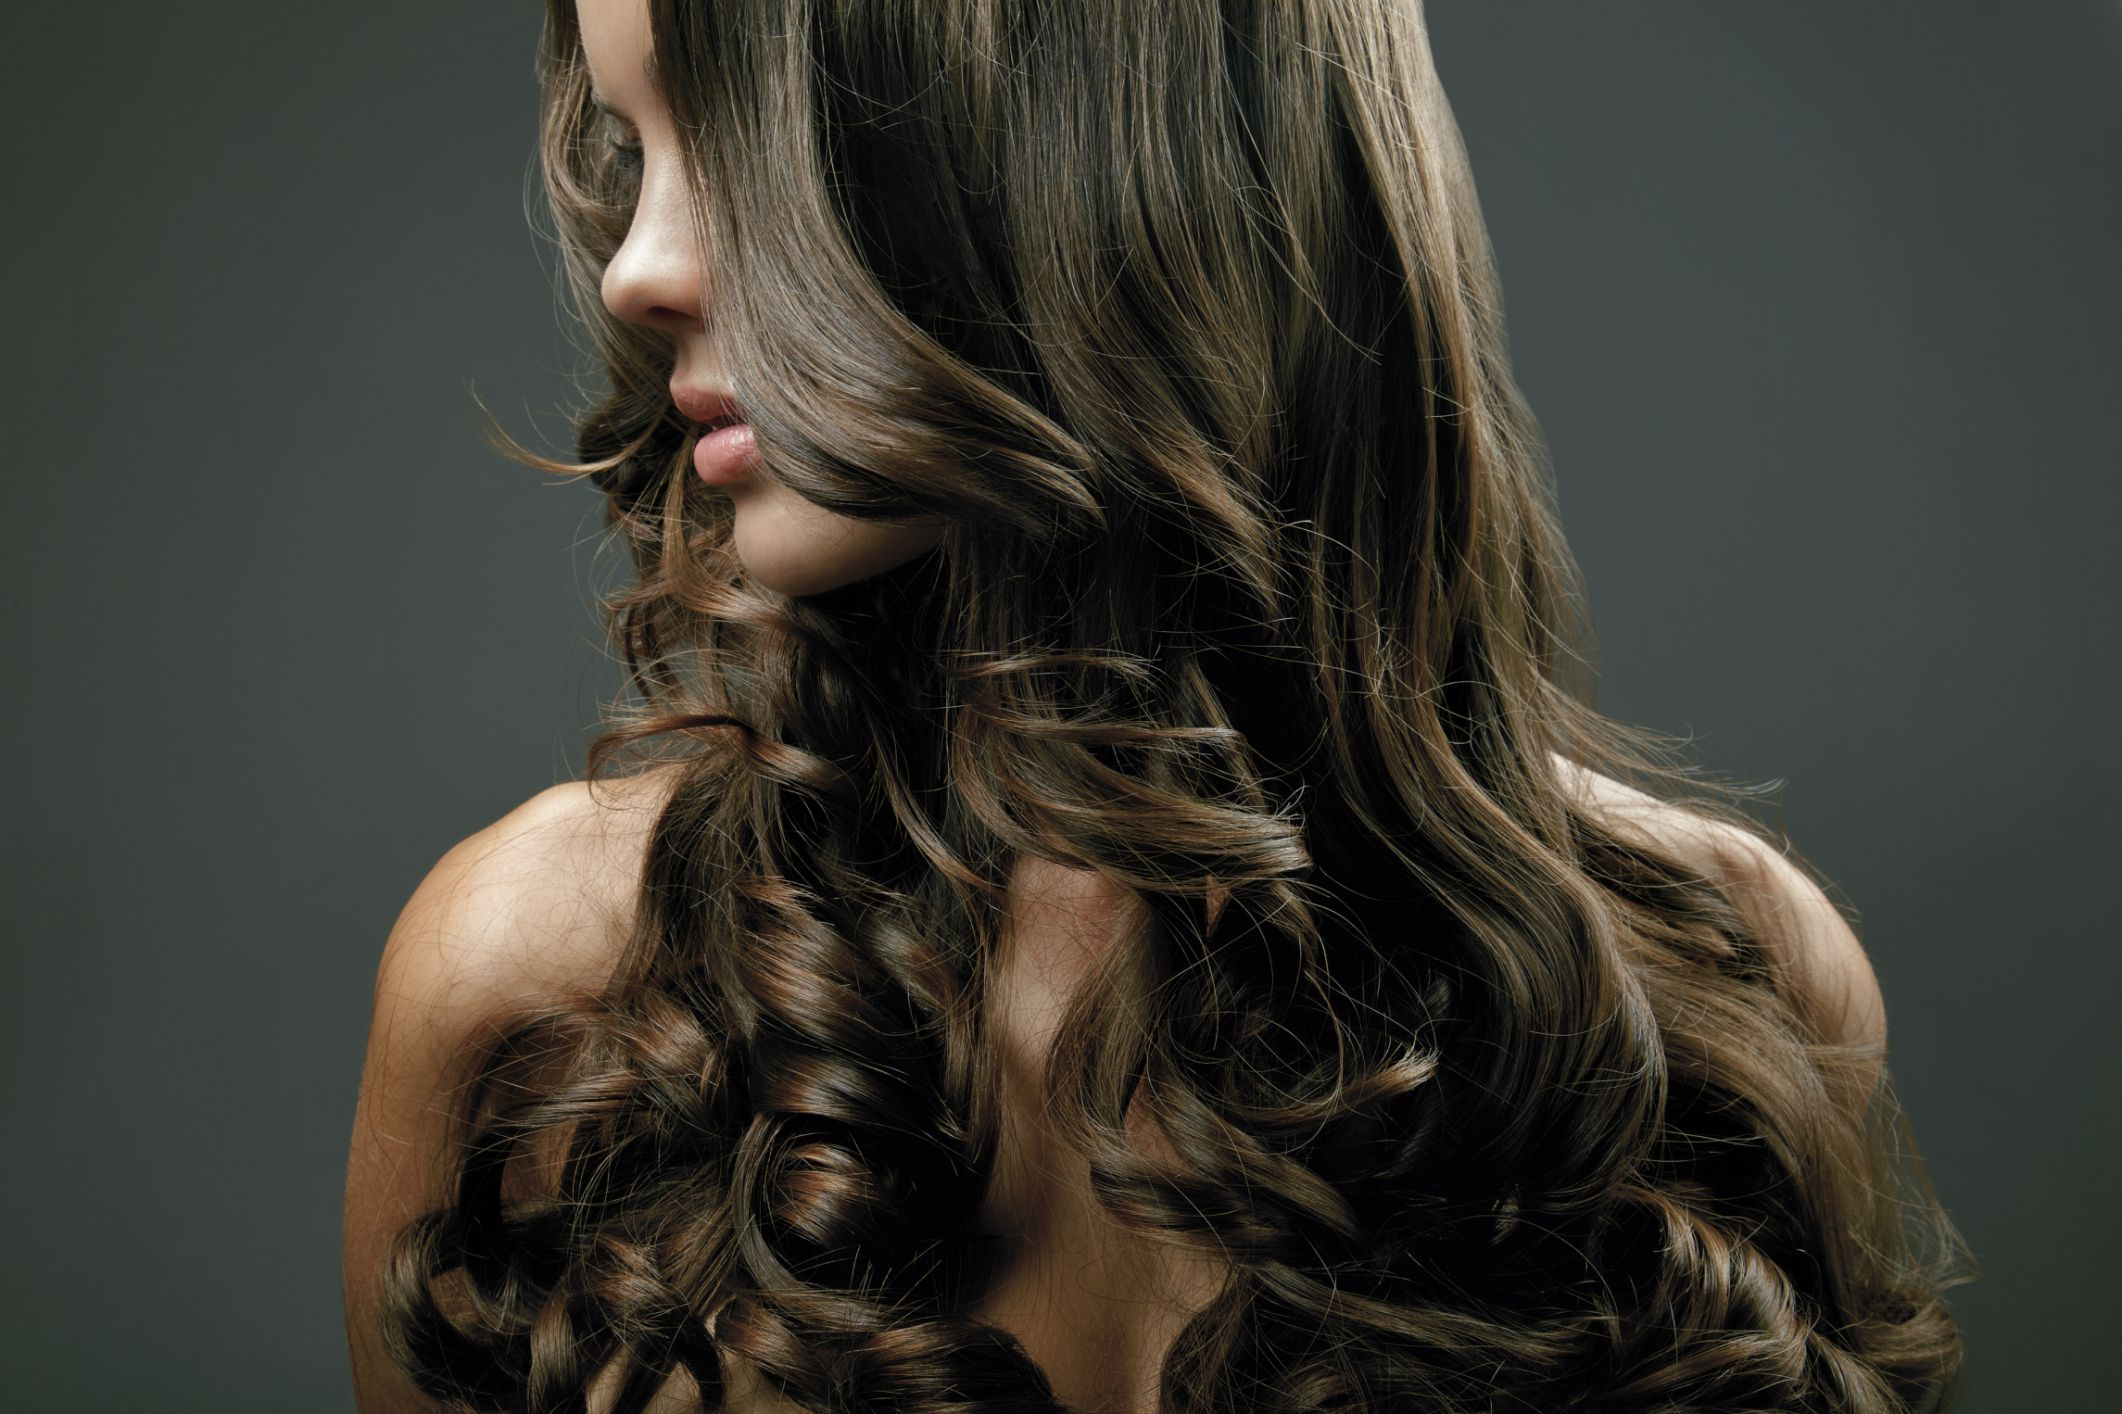 Straight perm groupon - The Right Cut And Products To Enhance Your Natural Waves